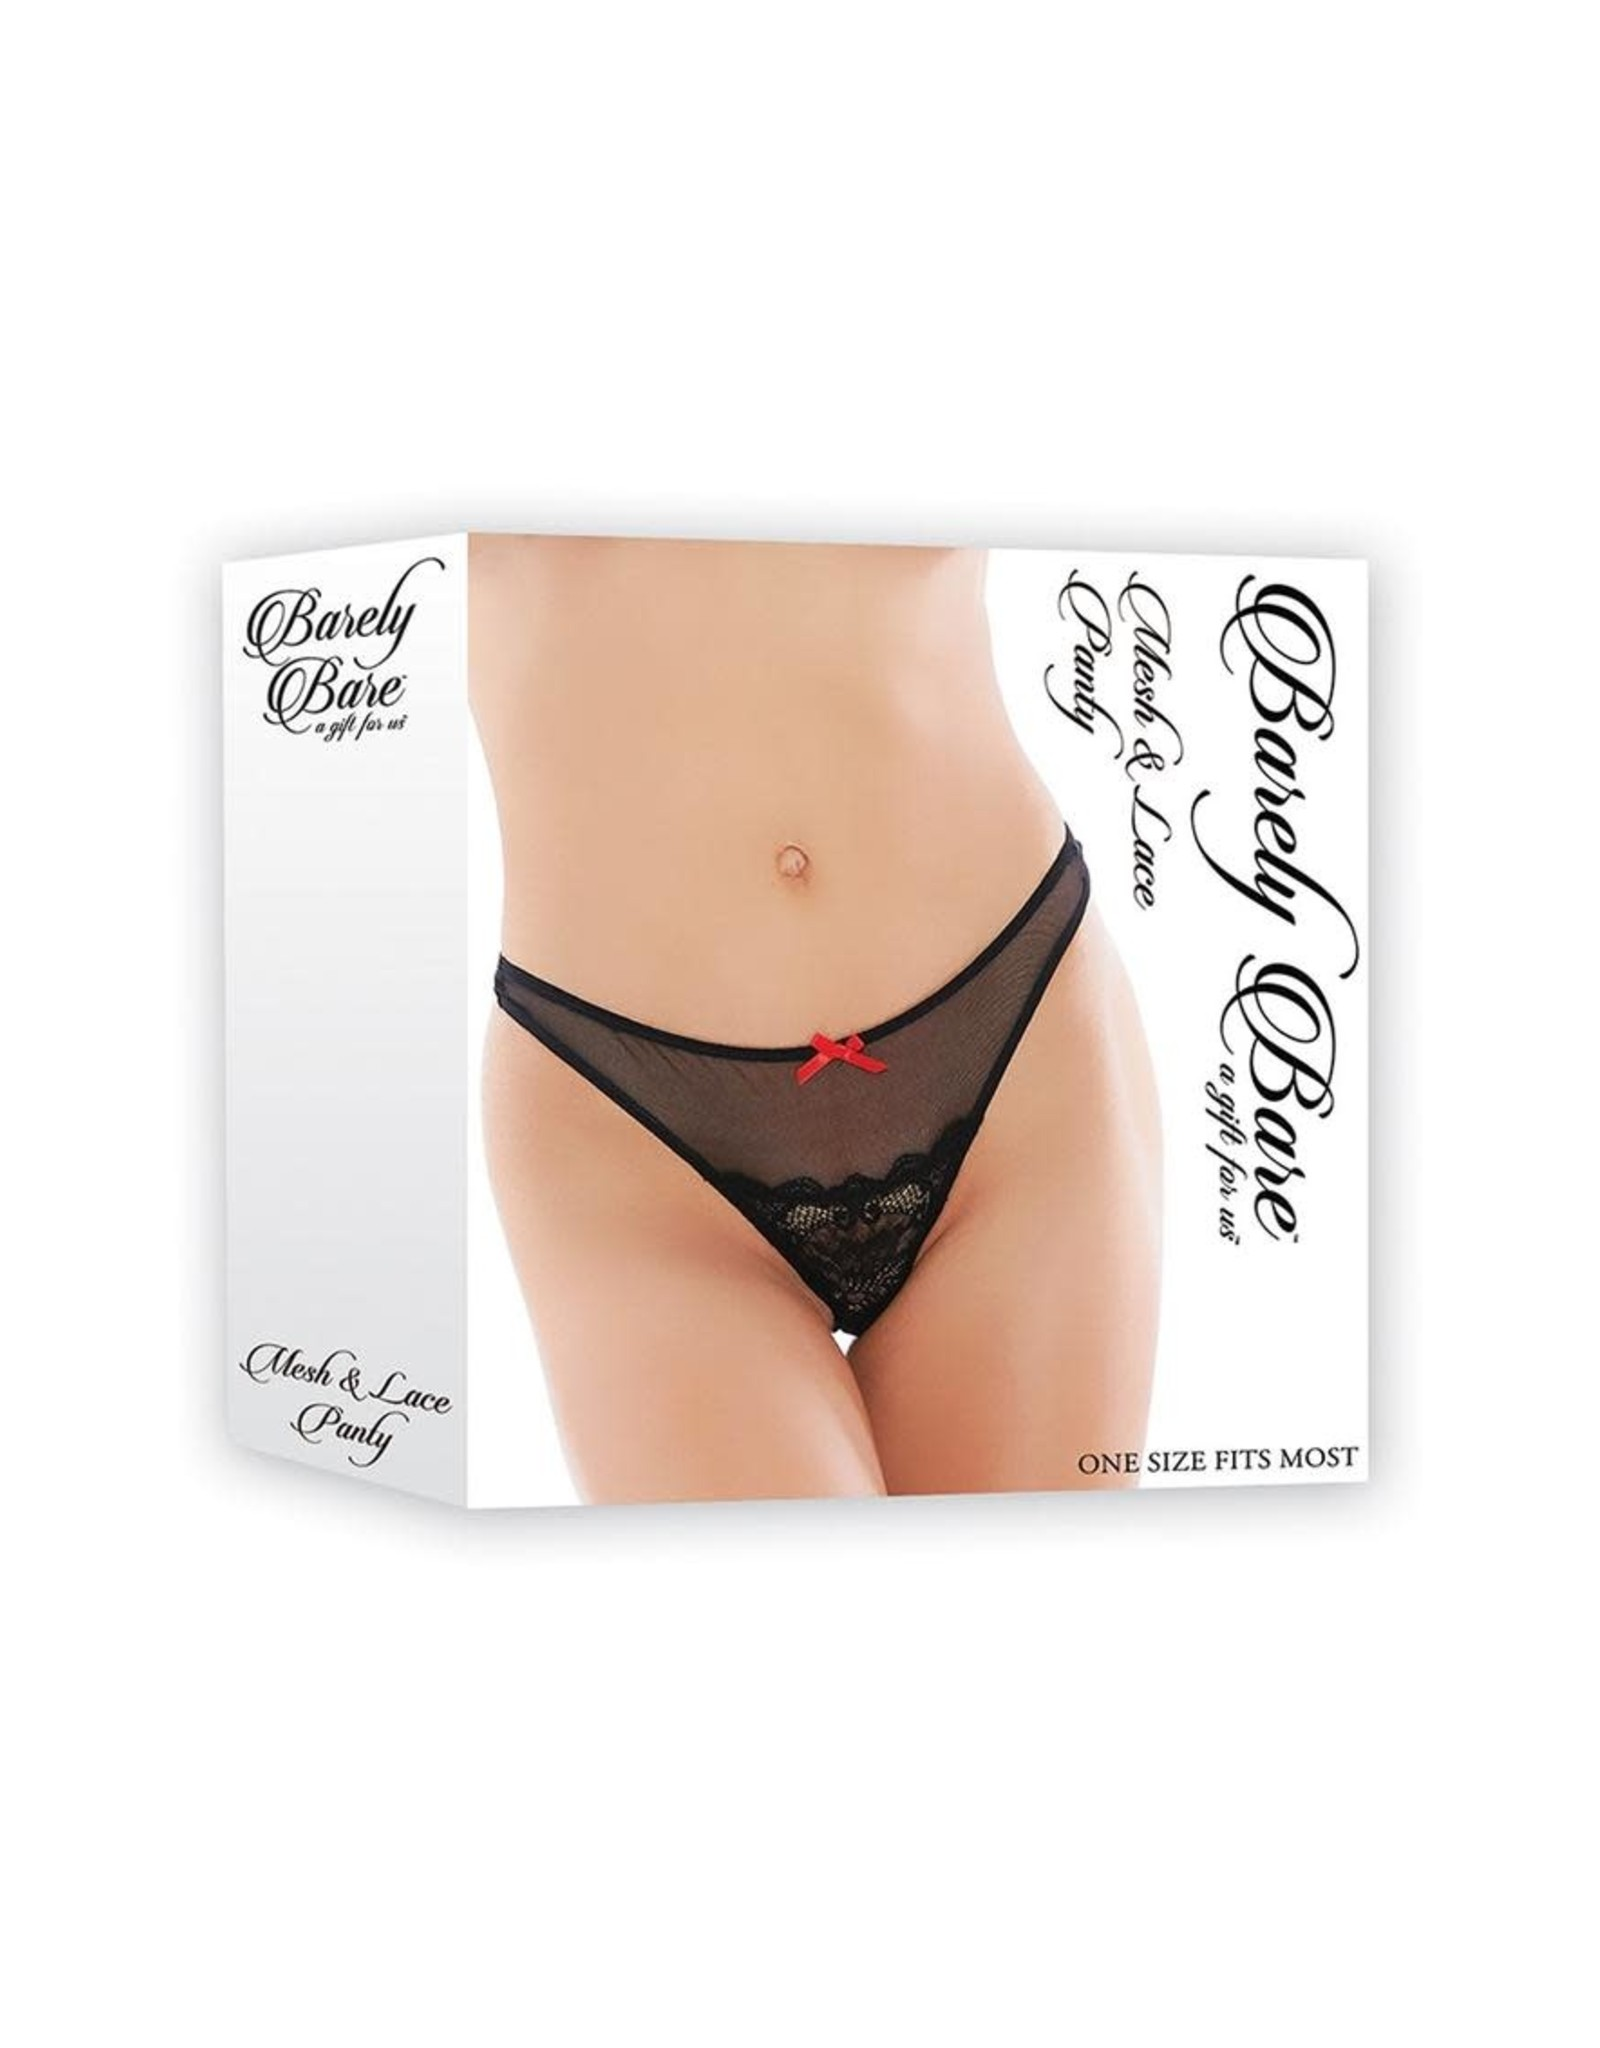 BARELY BARE MESH AND LACE PANTY ONE SIZE